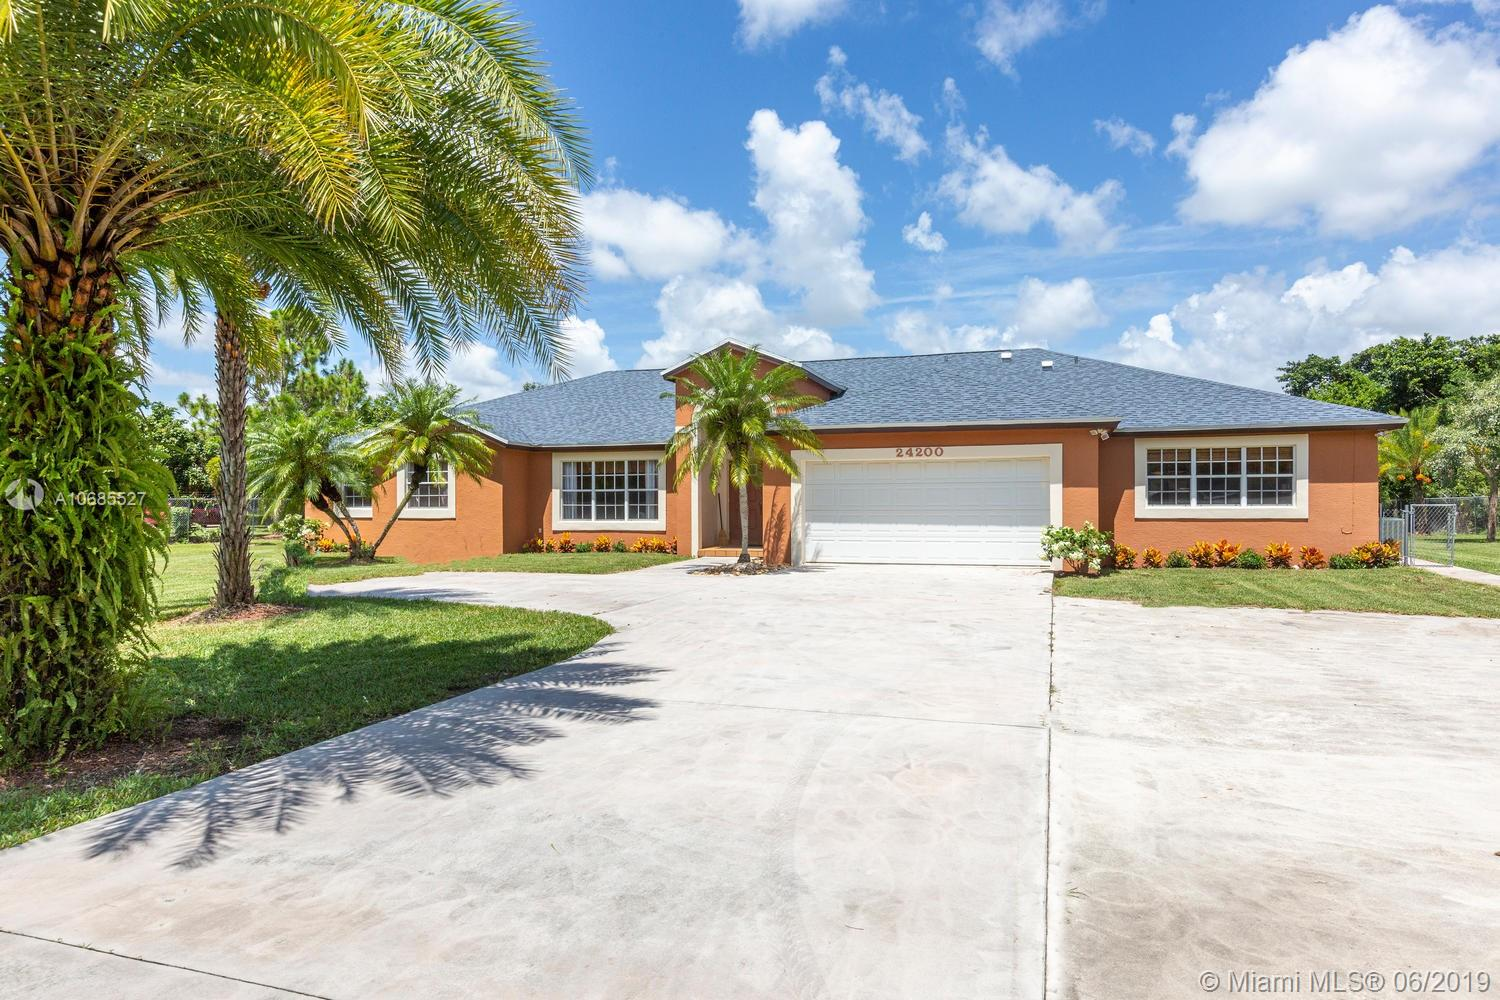 24200 SW 142nd Ave, Homestead, FL 33032 - Homestead, FL real estate listing